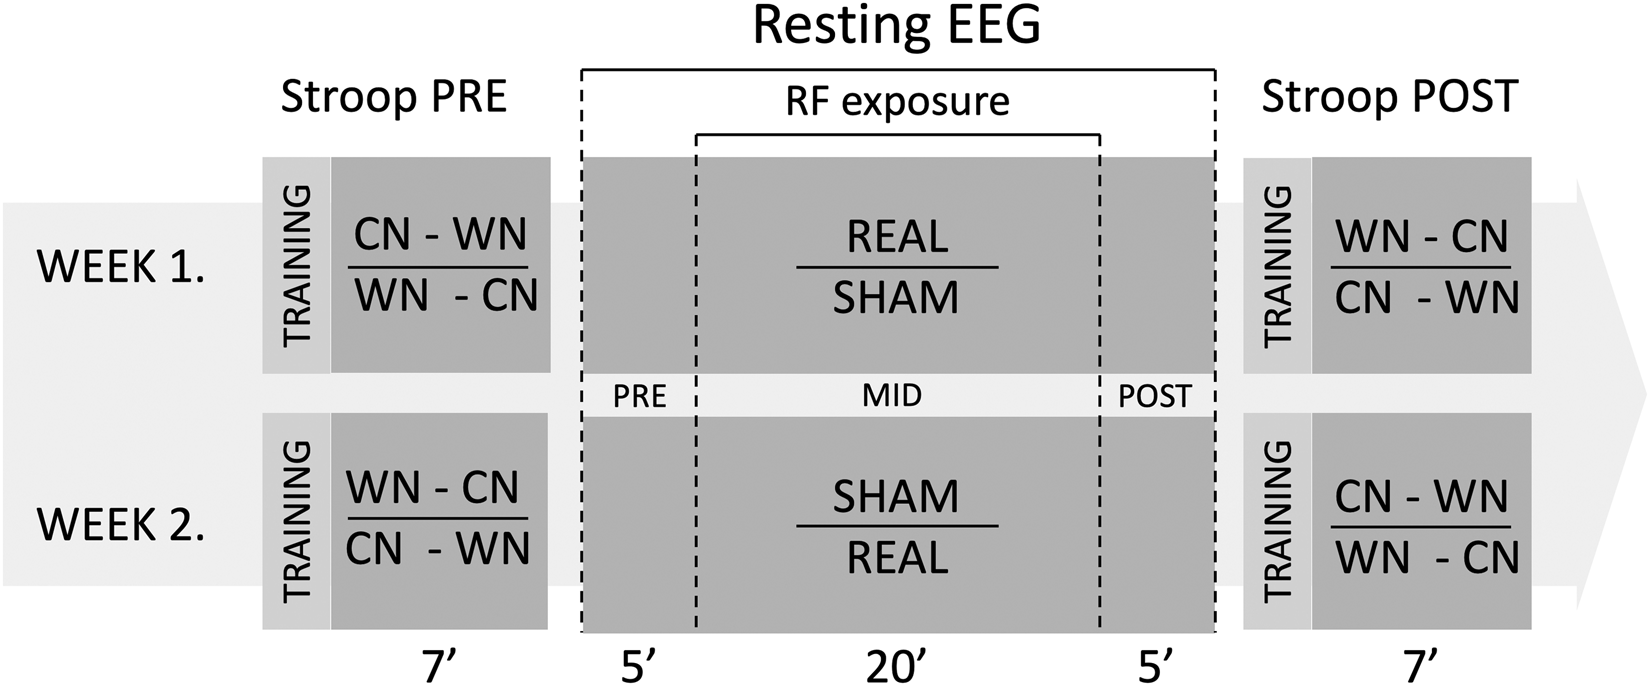 Short-term radiofrequency exposure from new generation